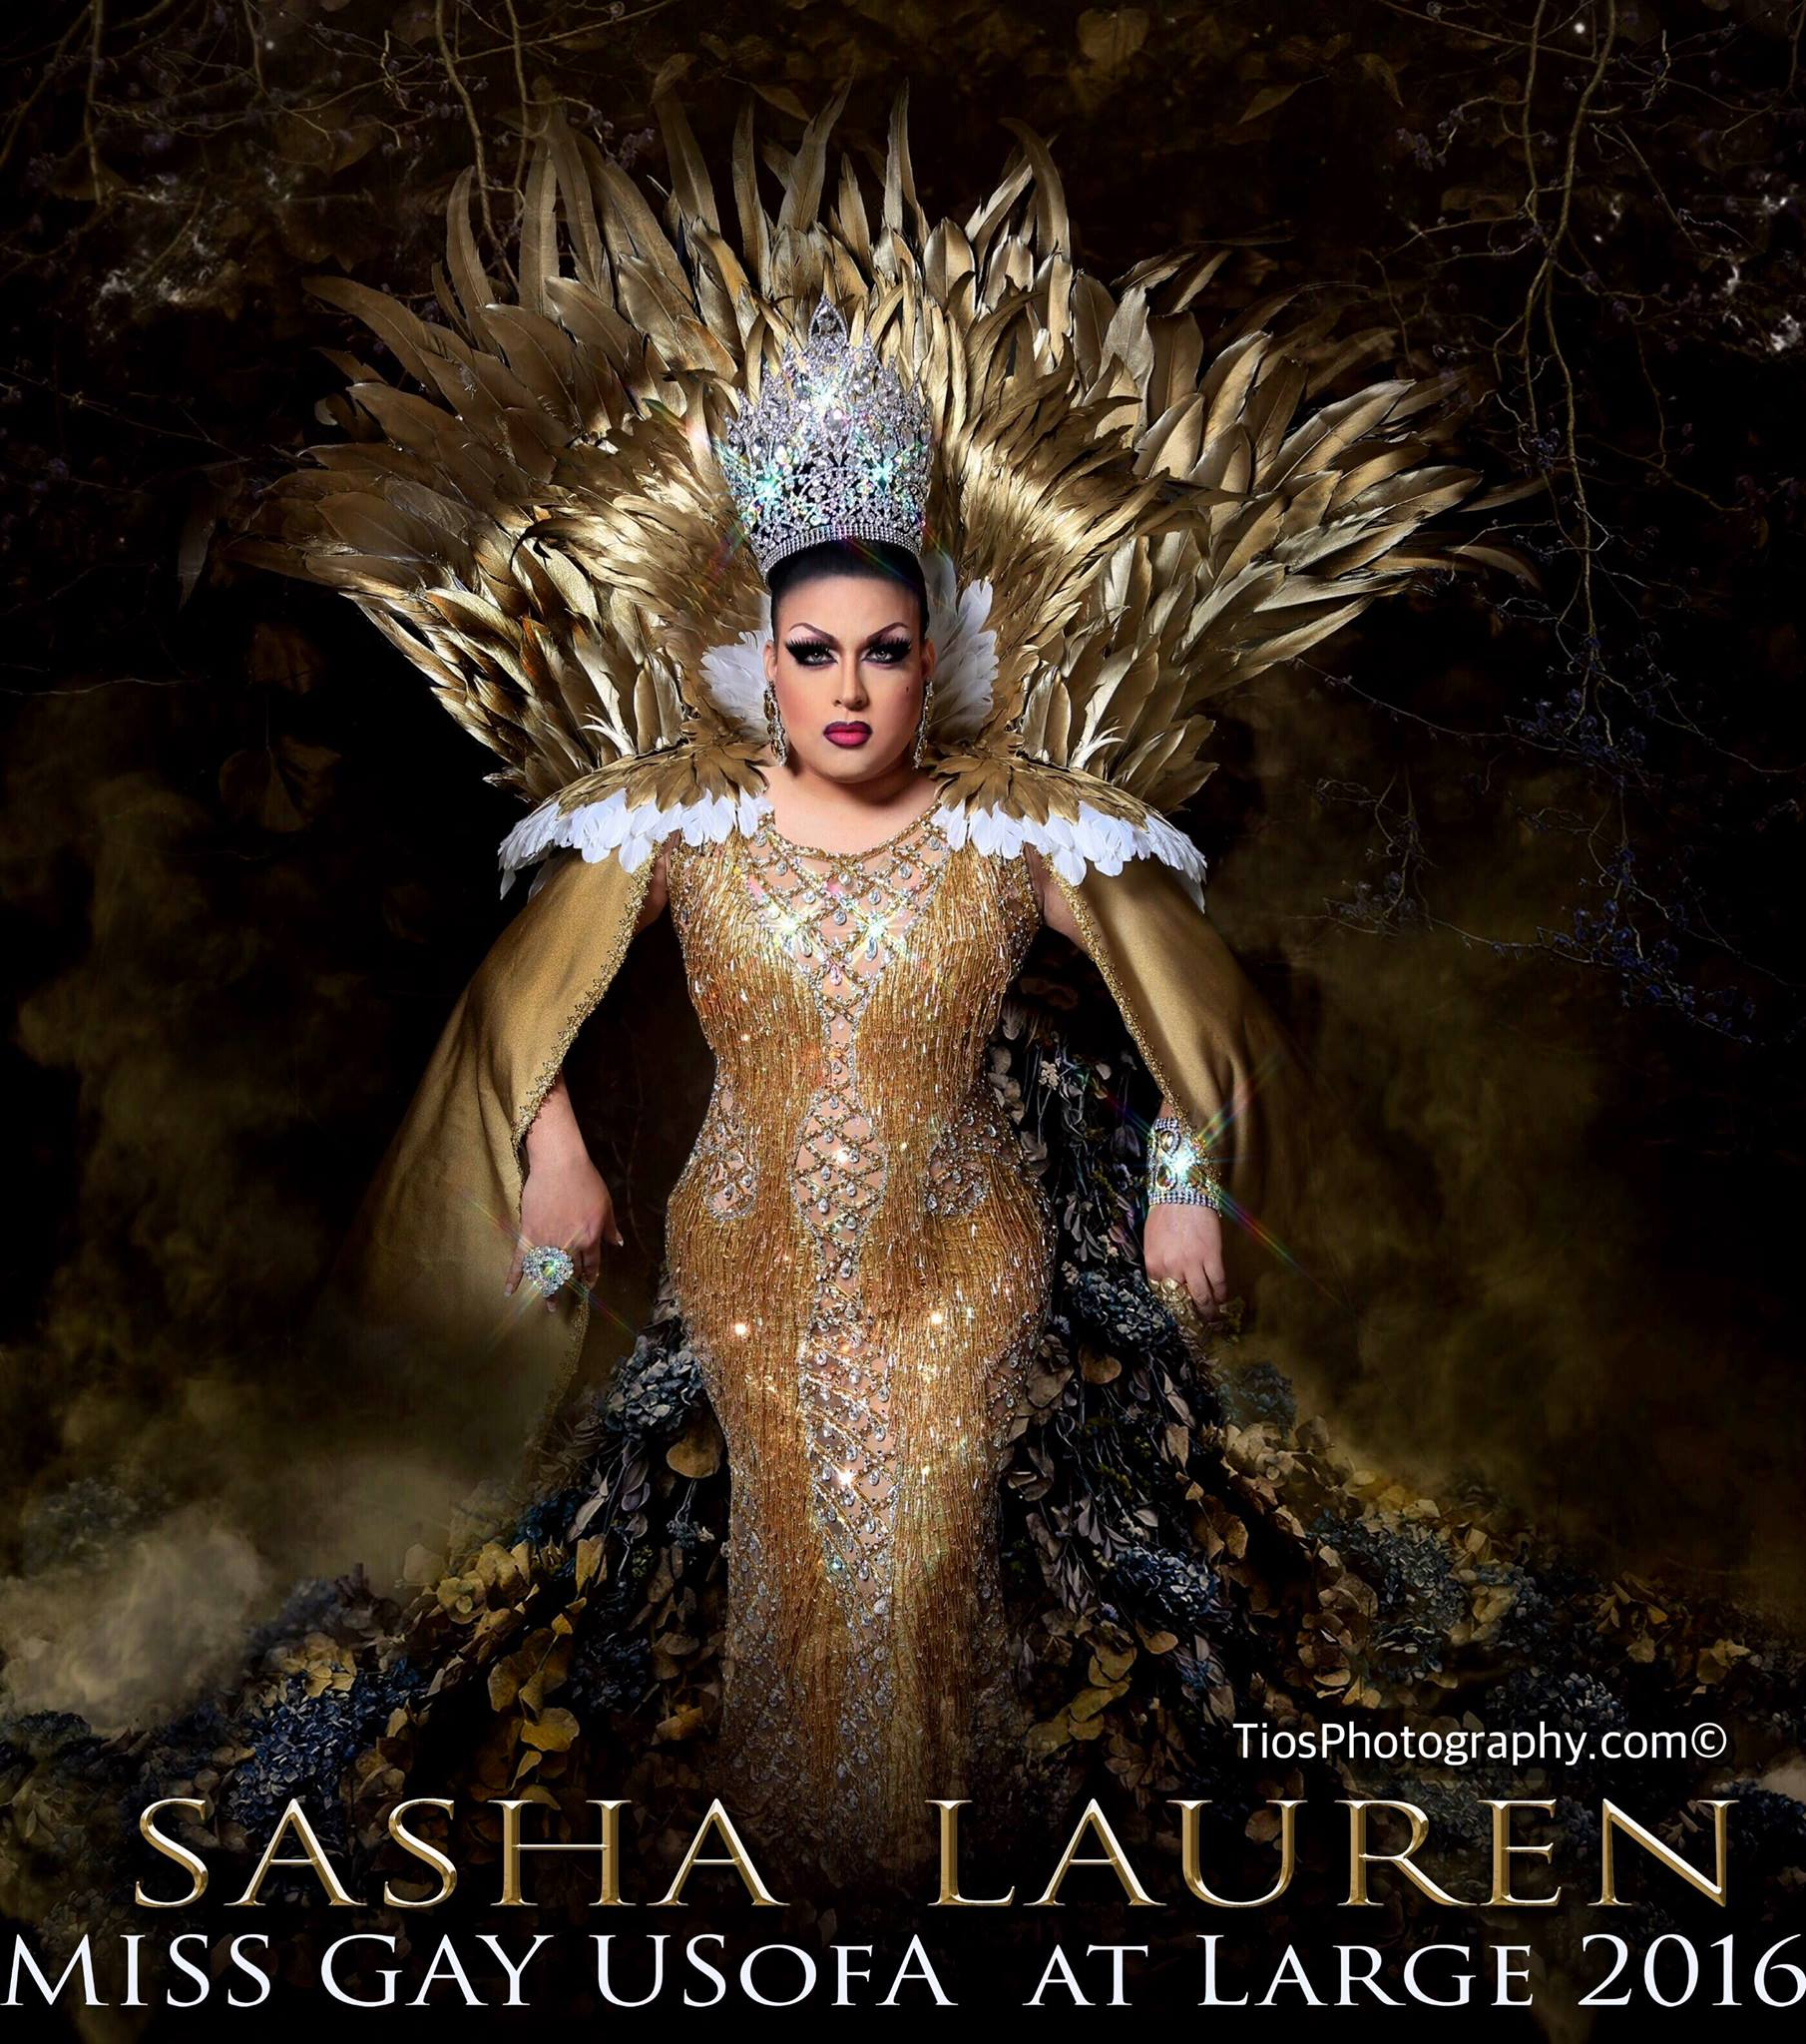 Sasha Lauren Miss Gay USofA At Large 2016